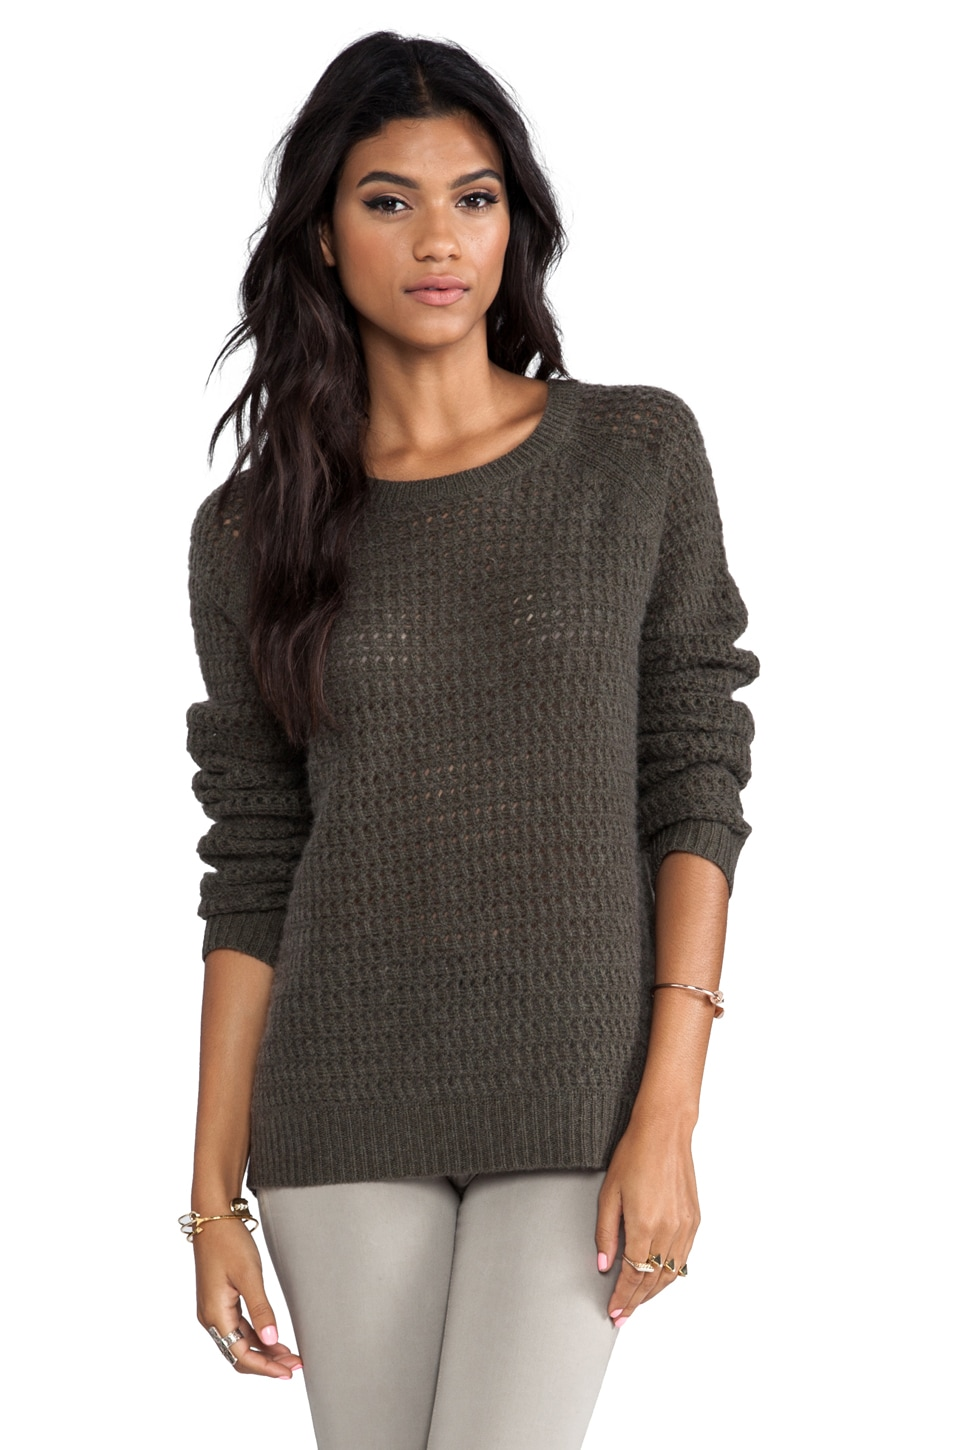 360 Sweater Laria Wool Cashmere Pullover in Olive